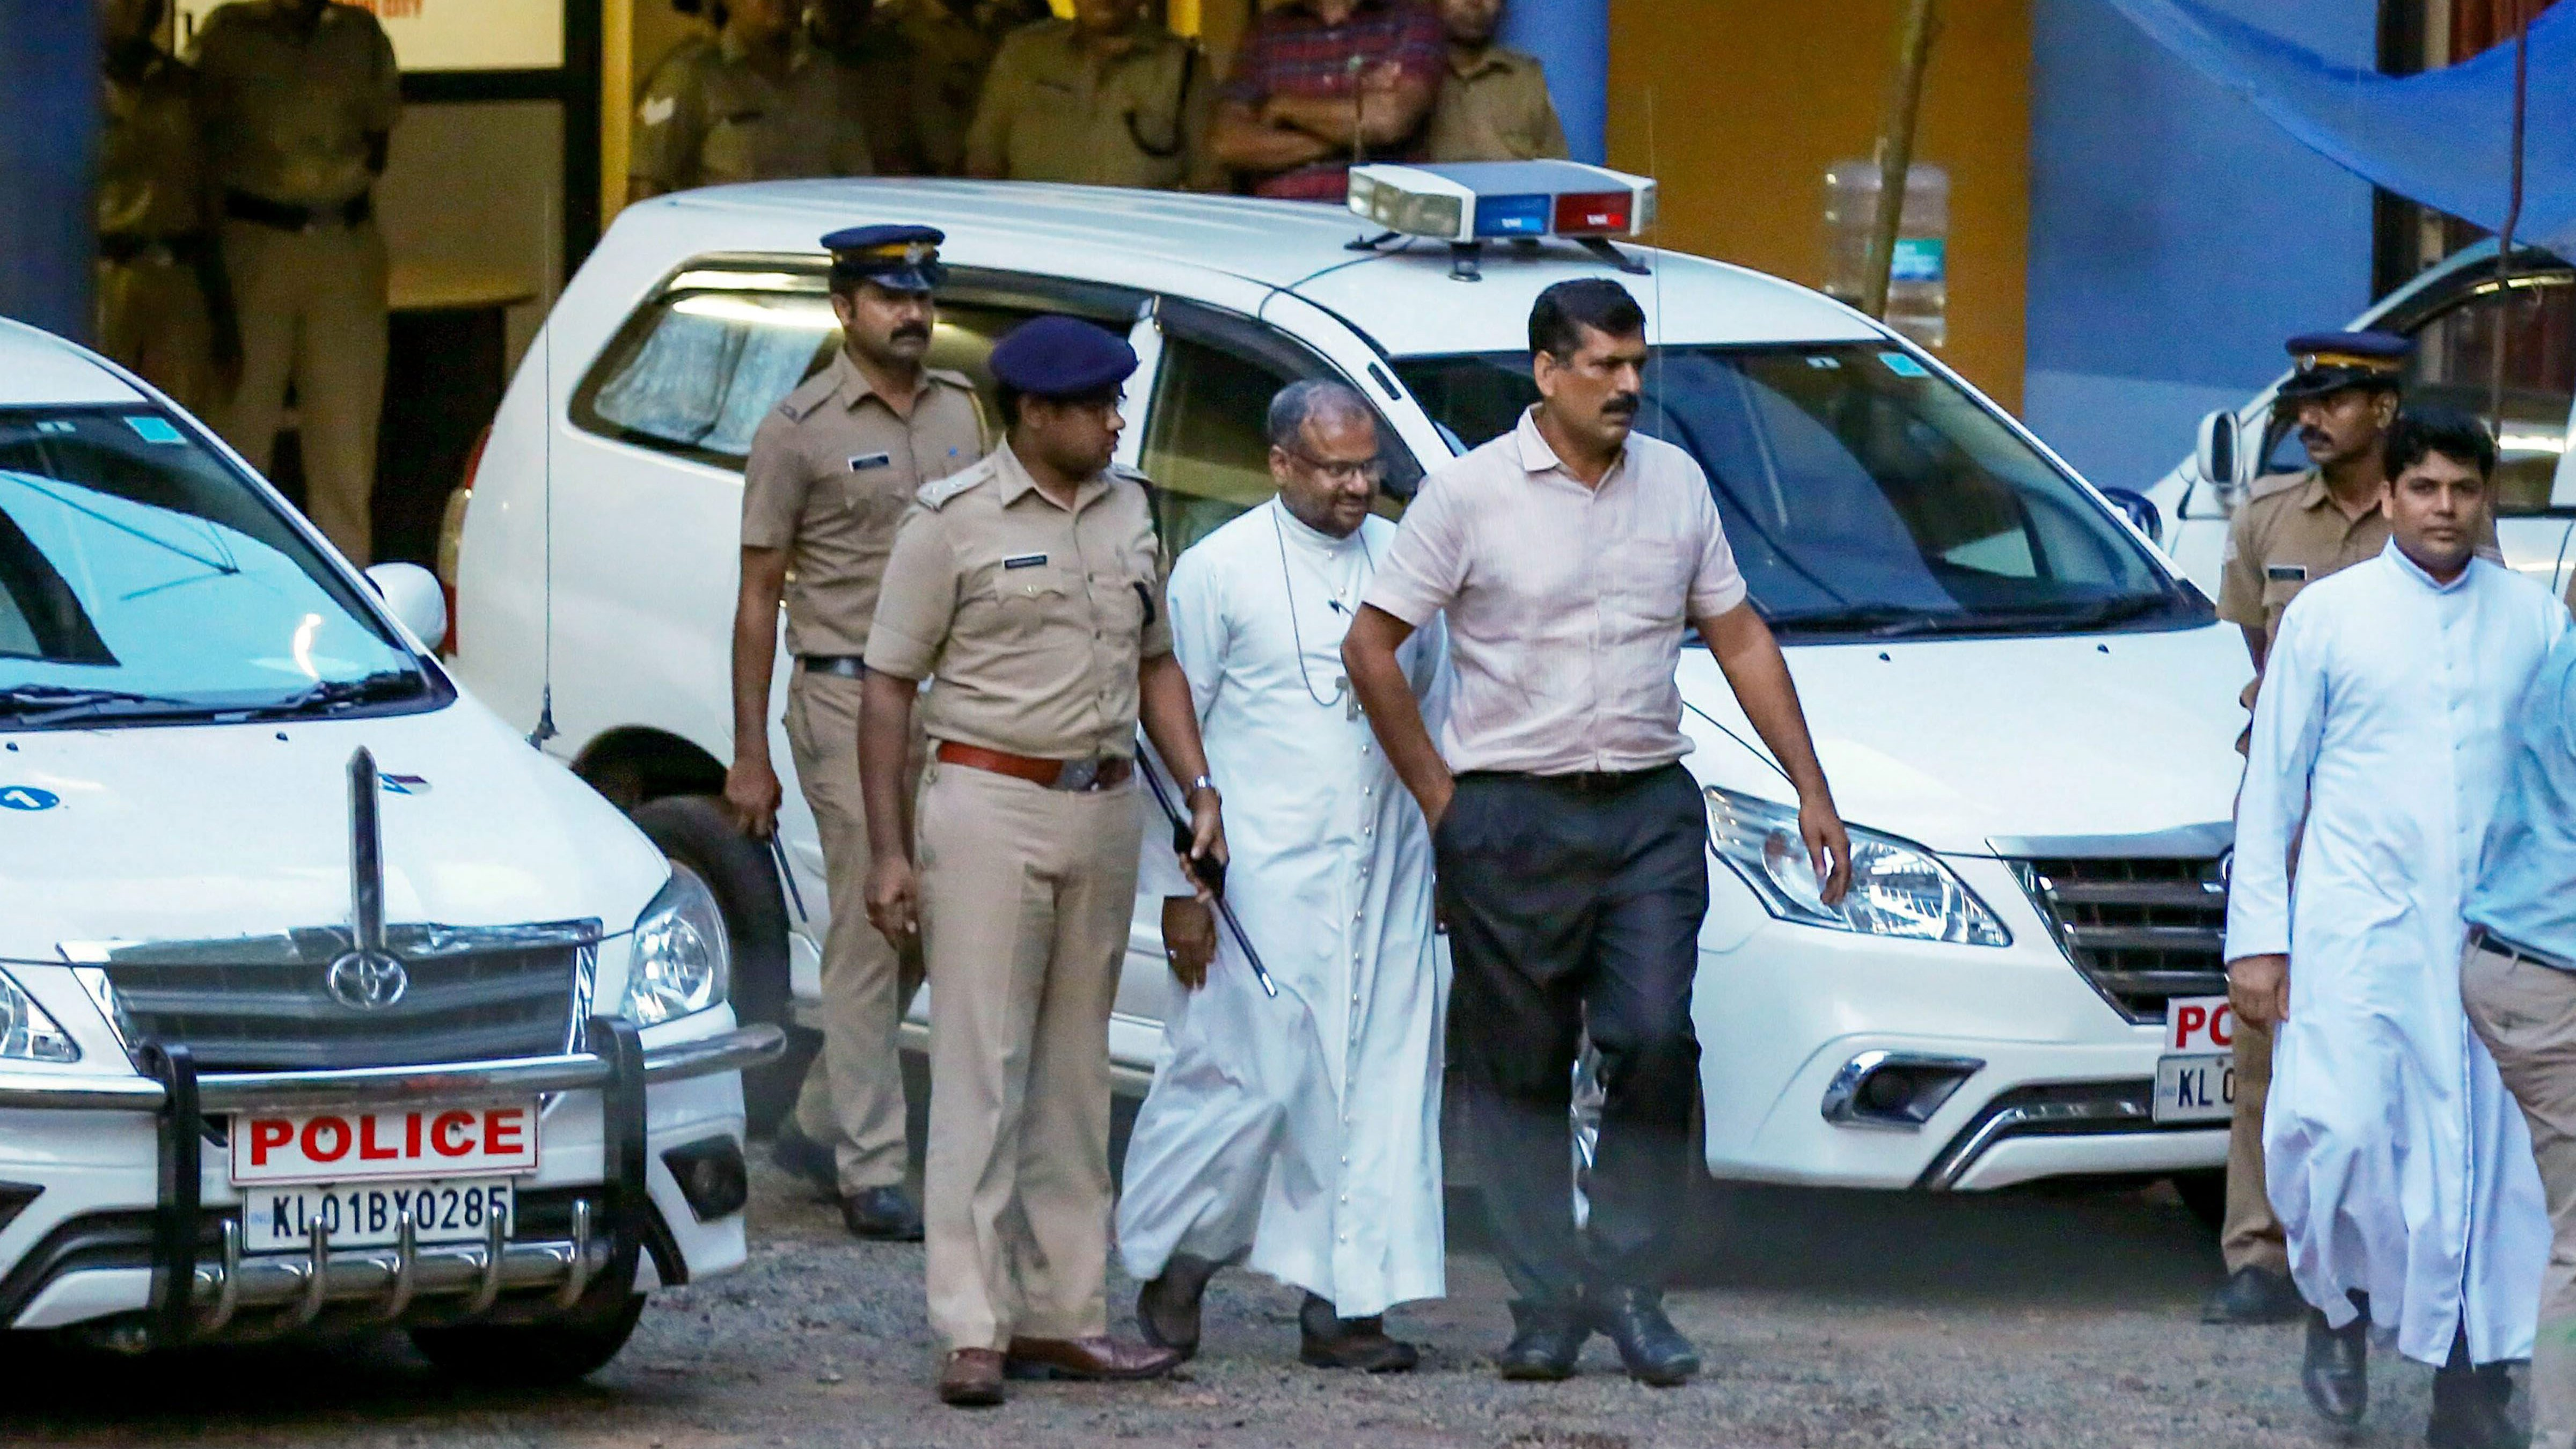 Bishop Franco Mulakkal, accused of raping a nun, leaves after questioning before the special investigation team of the Kerala police on Sept. 20